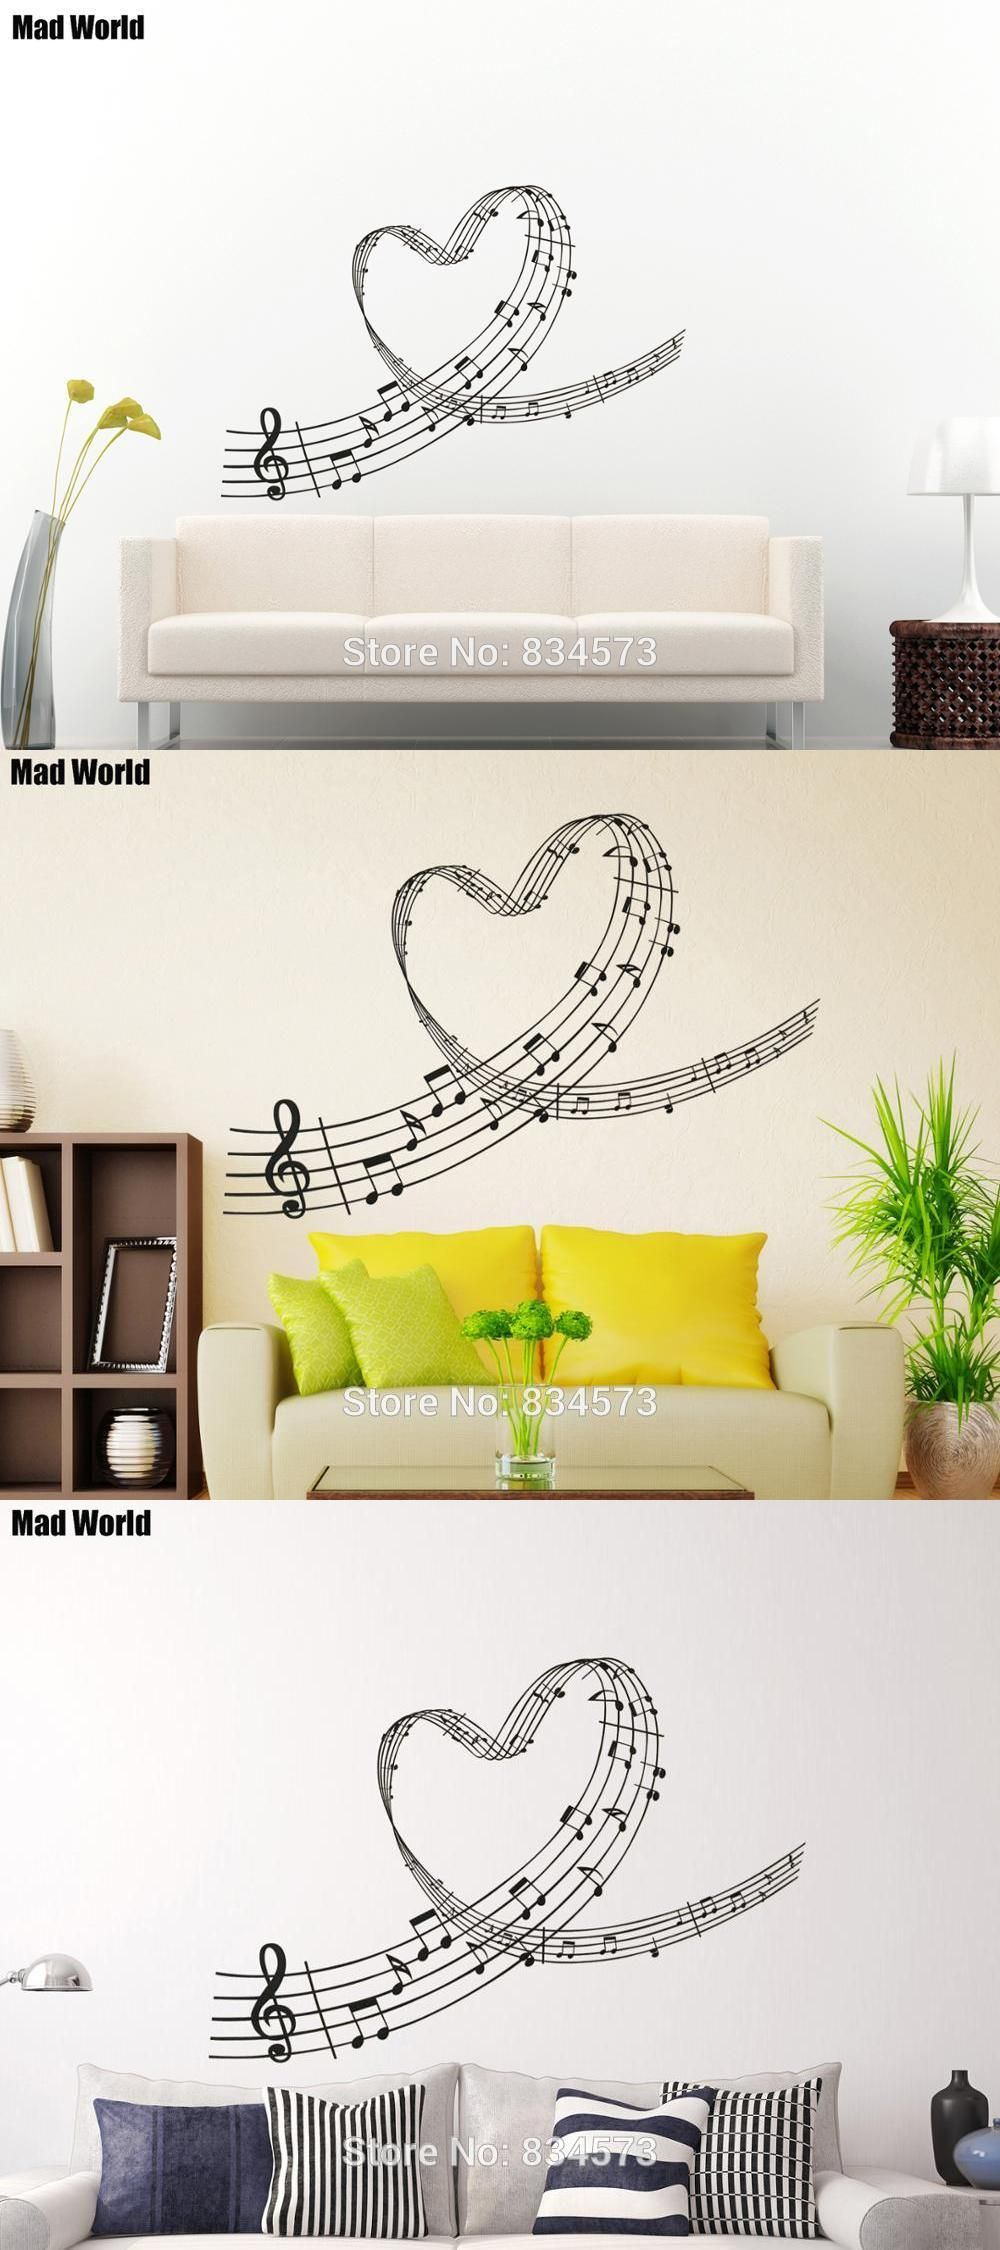 Mad World Music Love Heart Notes Wall Art Stickers Wall Decal Home DIY  Decoration Removable